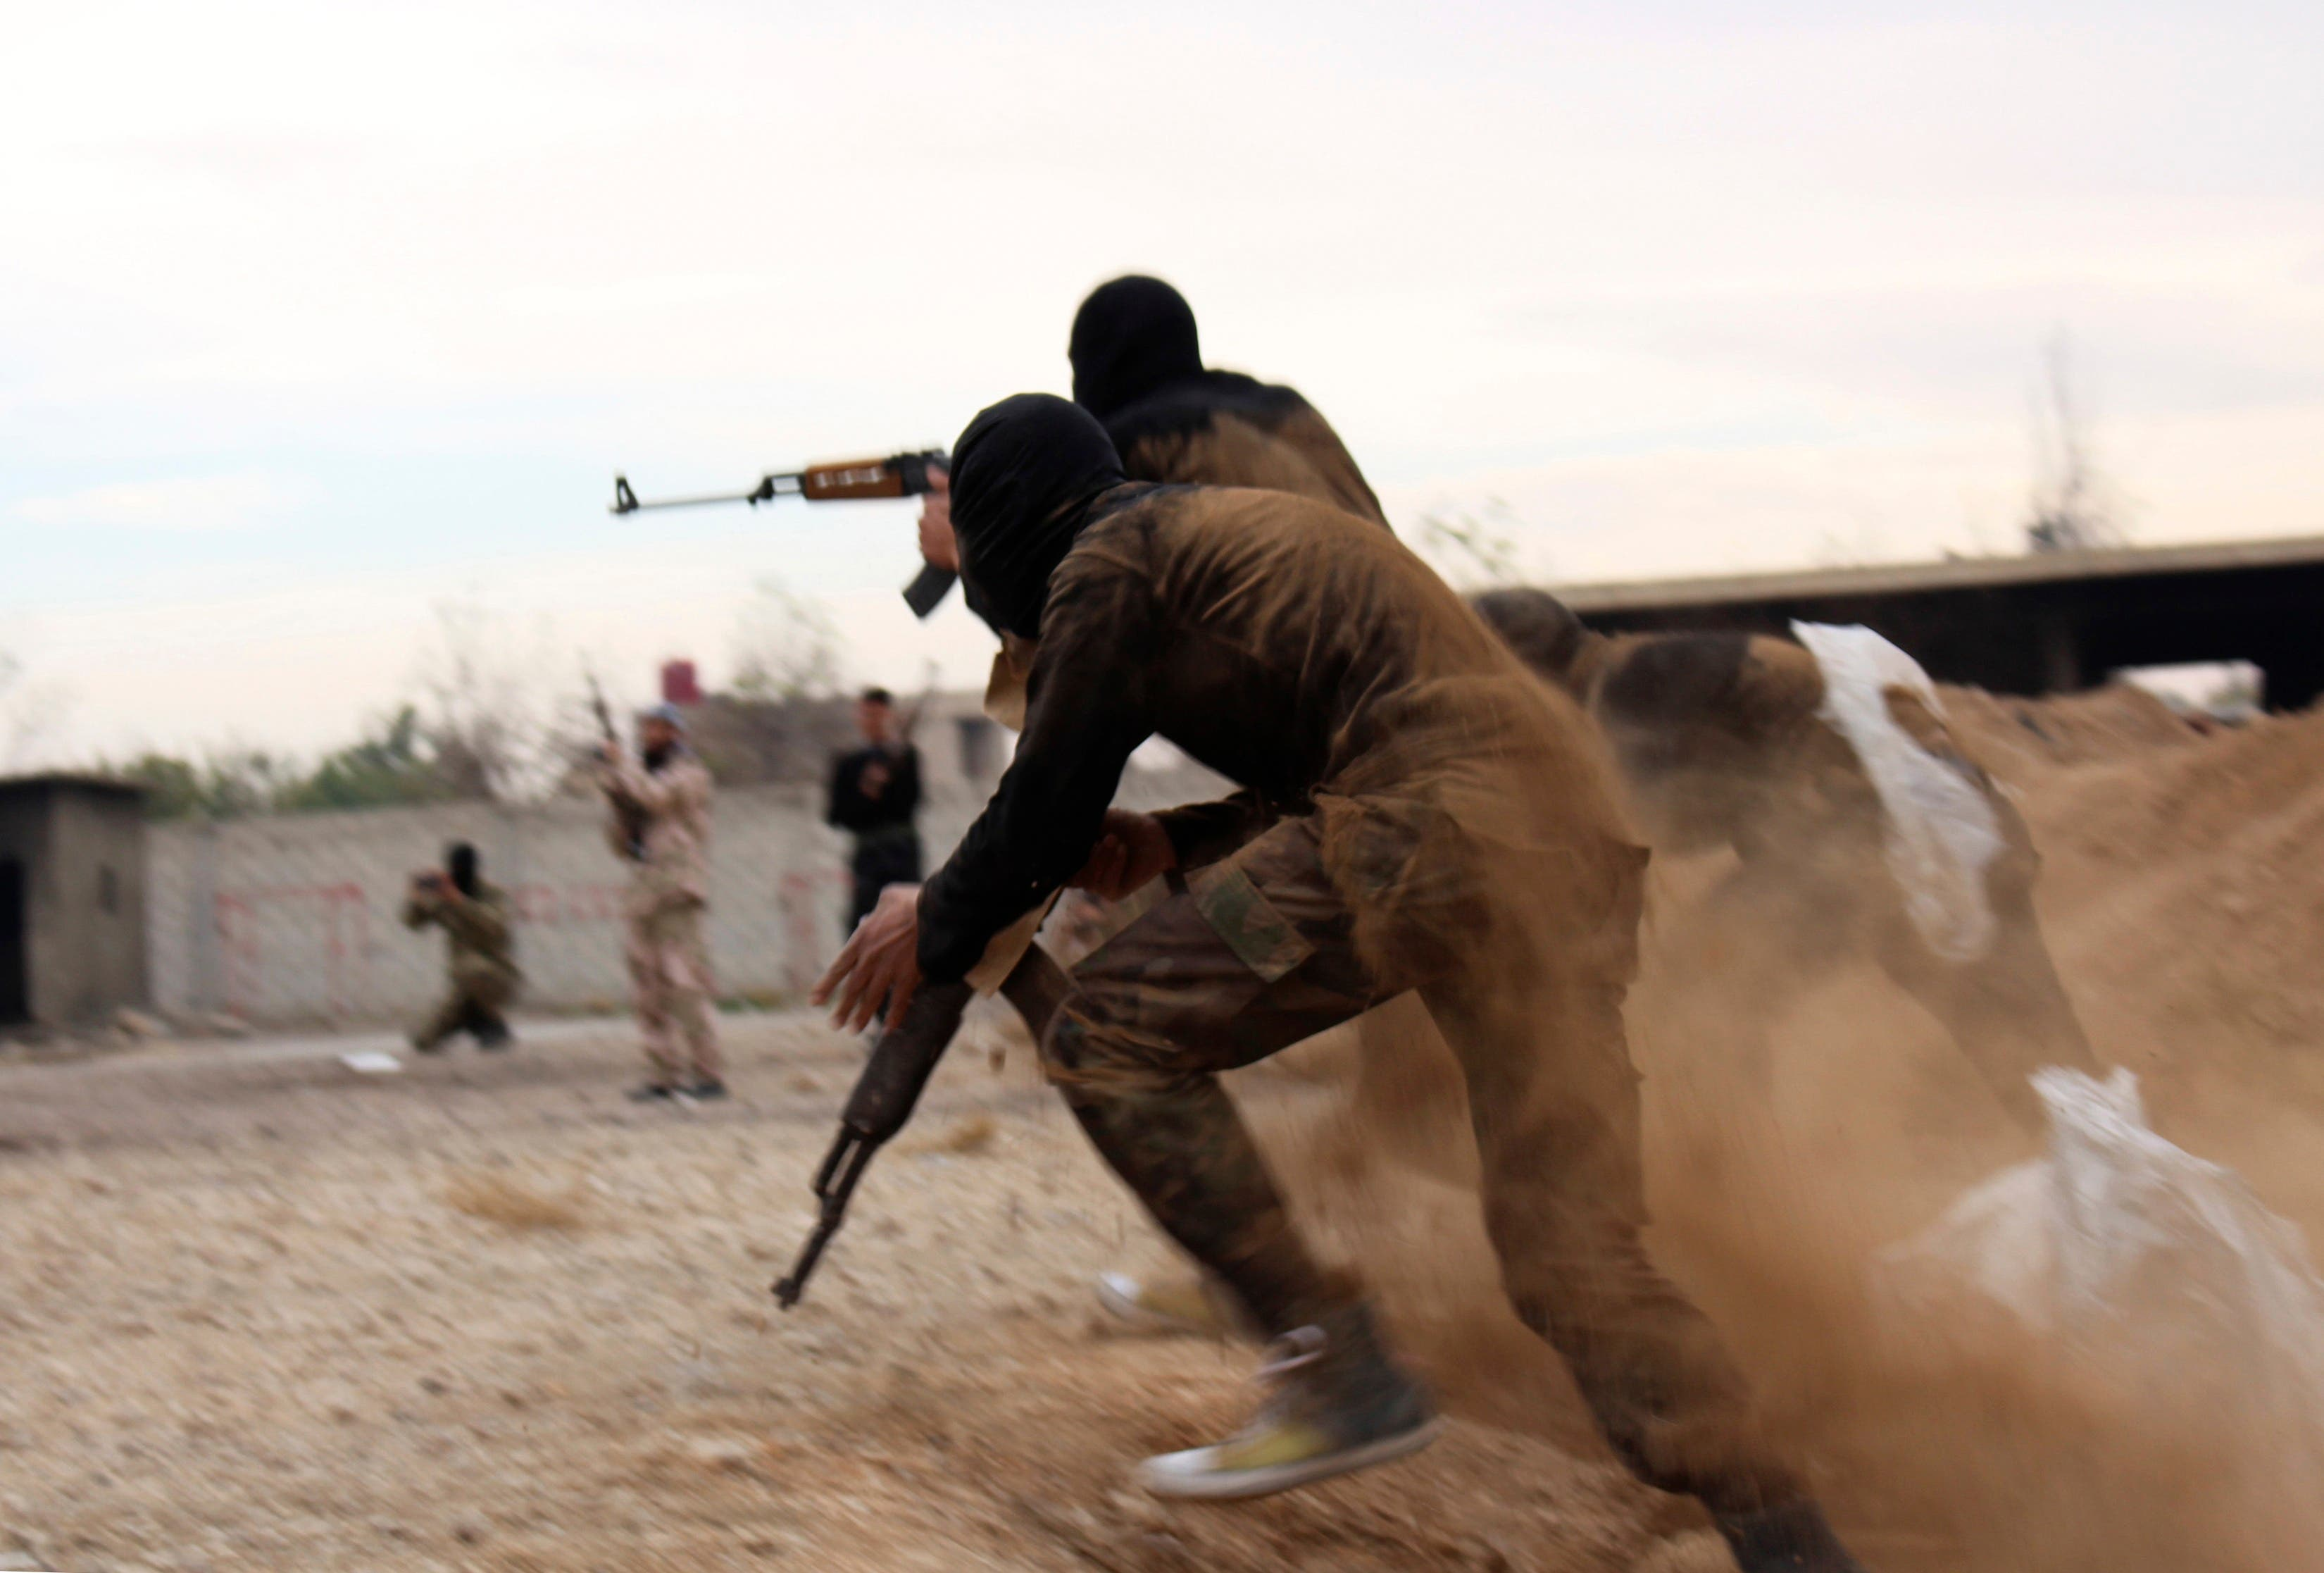 Syria's Islamist fighters show off their skills